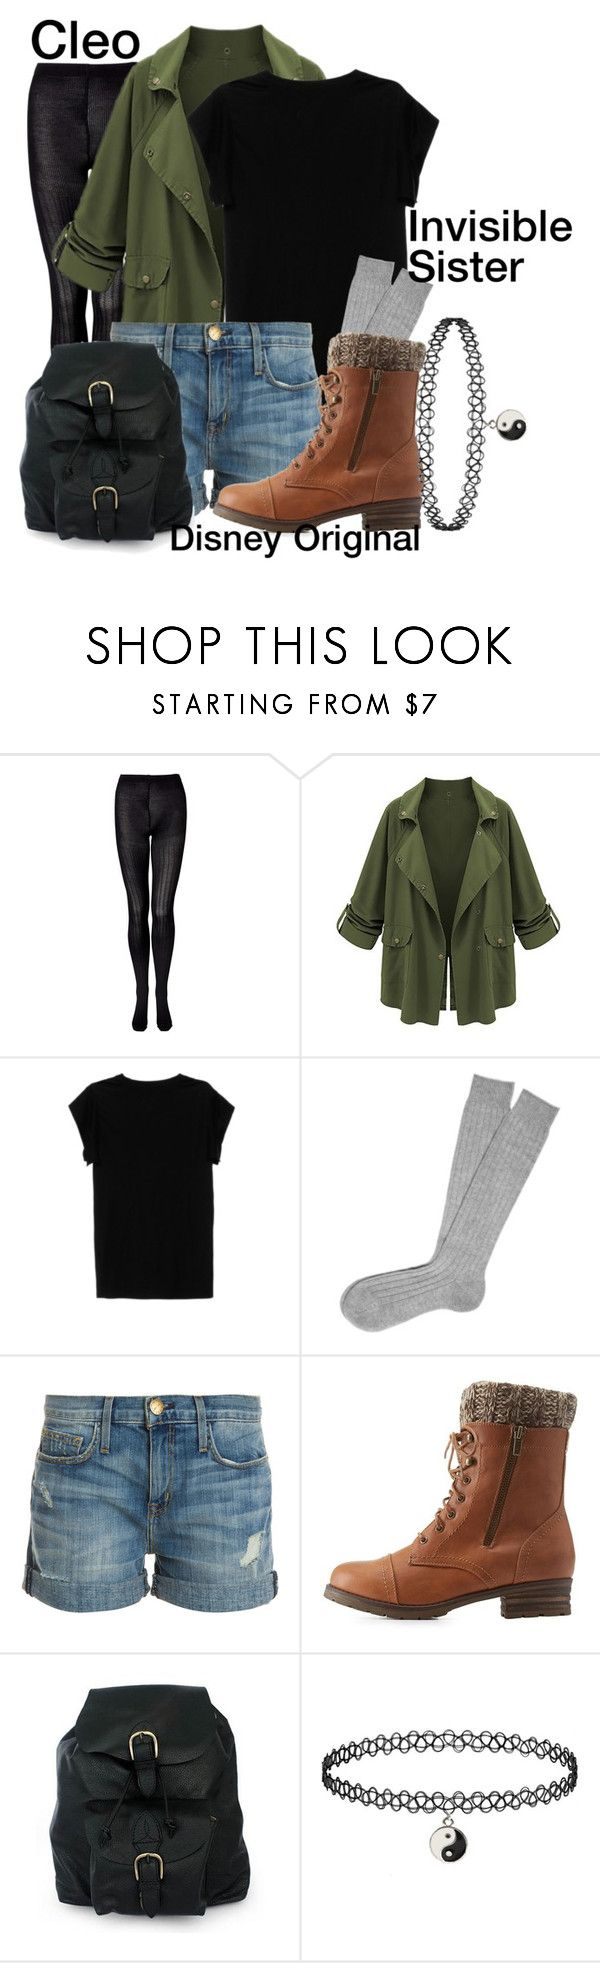 Cleo ~Invisible Sister~ Disney Original by drake-max on Polyvore featuring Isabel Marant, Current/Elliott, Charlotte Russe and NOVICA